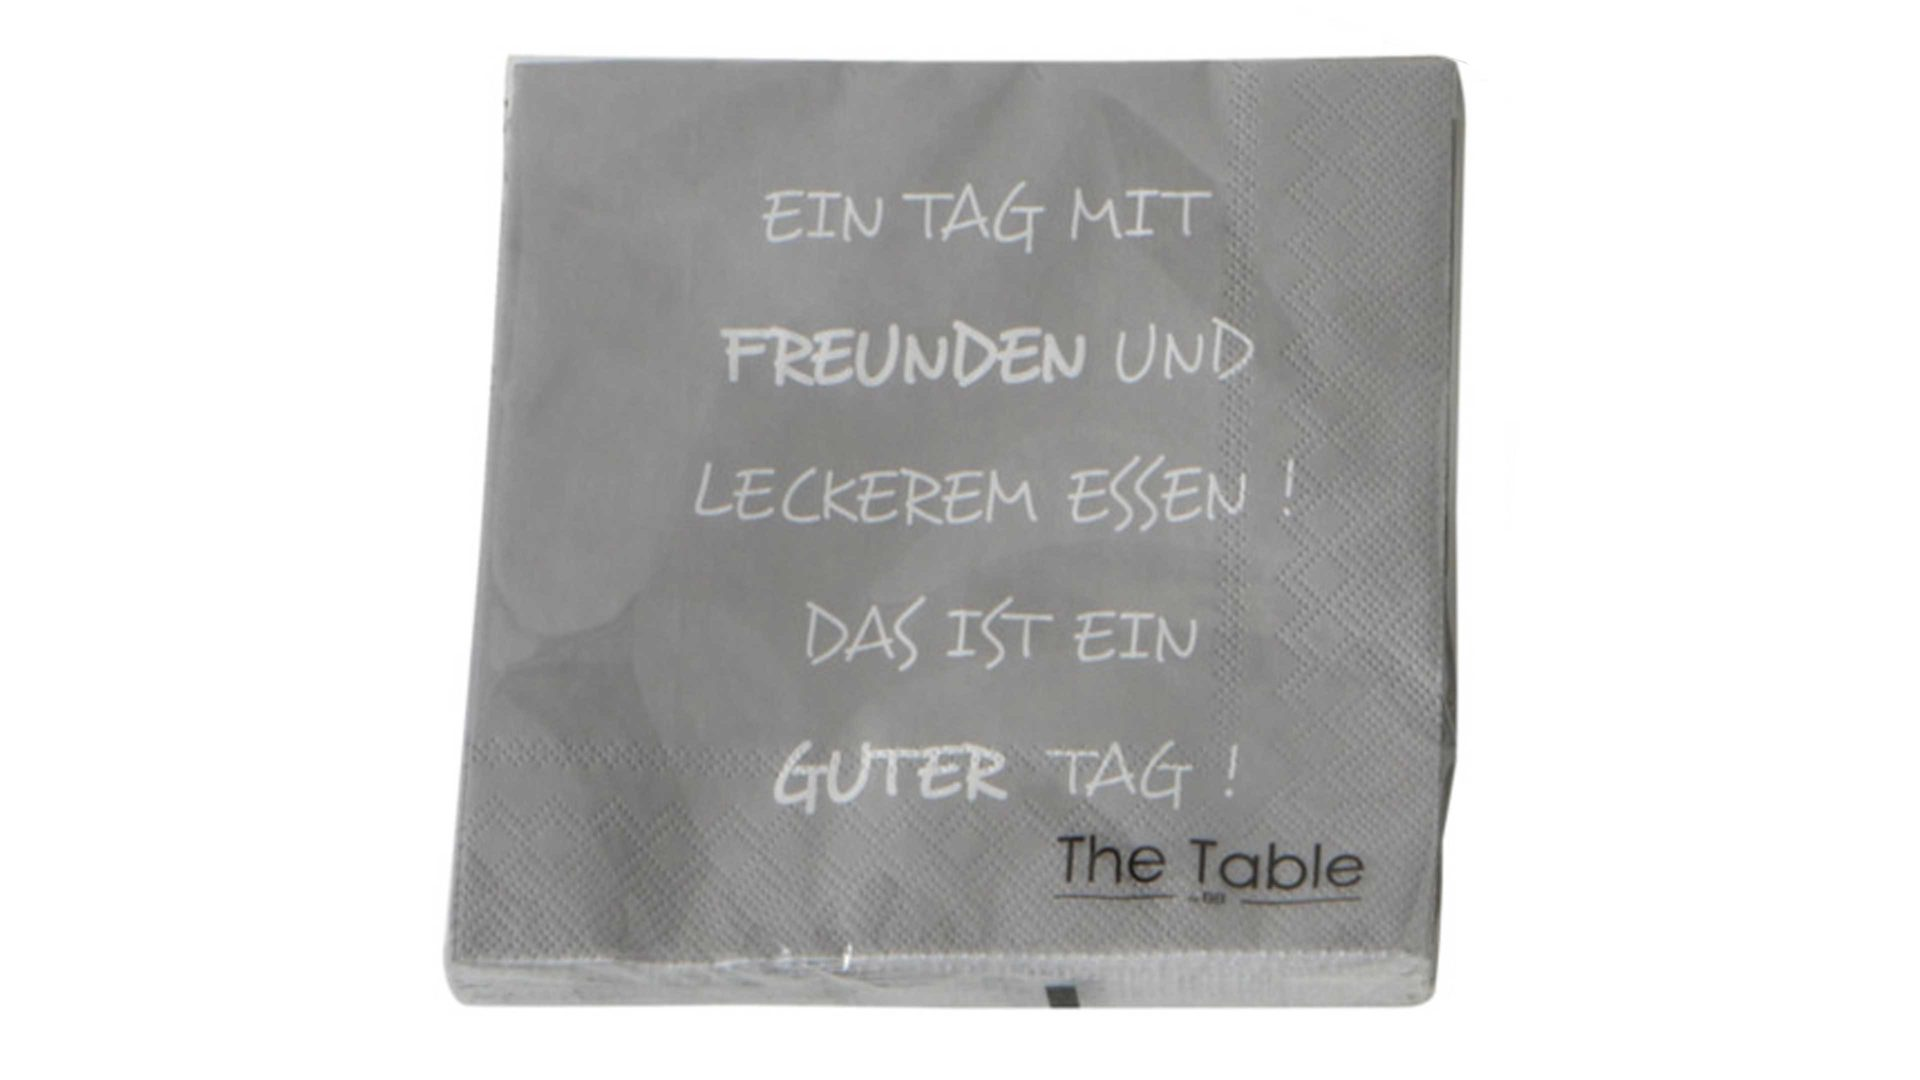 Serviette Interliving BEST BUDDYS! aus Karton / Papier / Pappe in Grau Interliving BEST BUDDYS! Serviette Everyday Motiv Ein Tag mit Freunden – ca. 17 x 17 cm